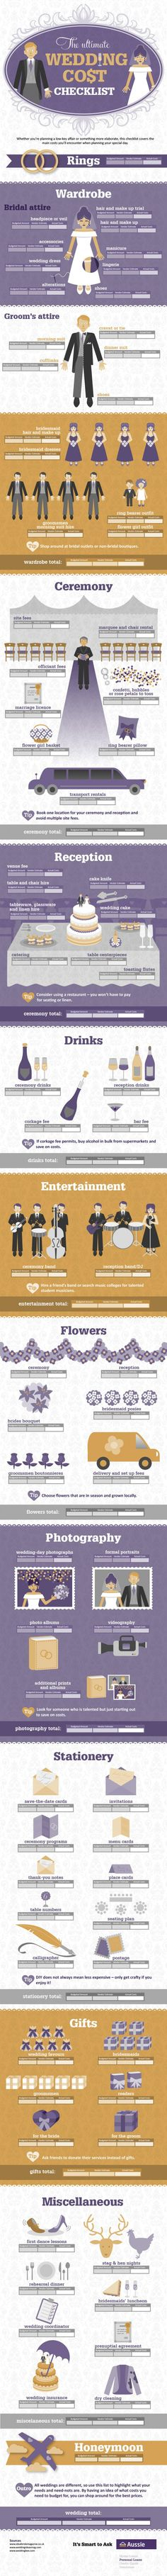 The Ultimate Wedding Cost Checklist Infographic Infographic